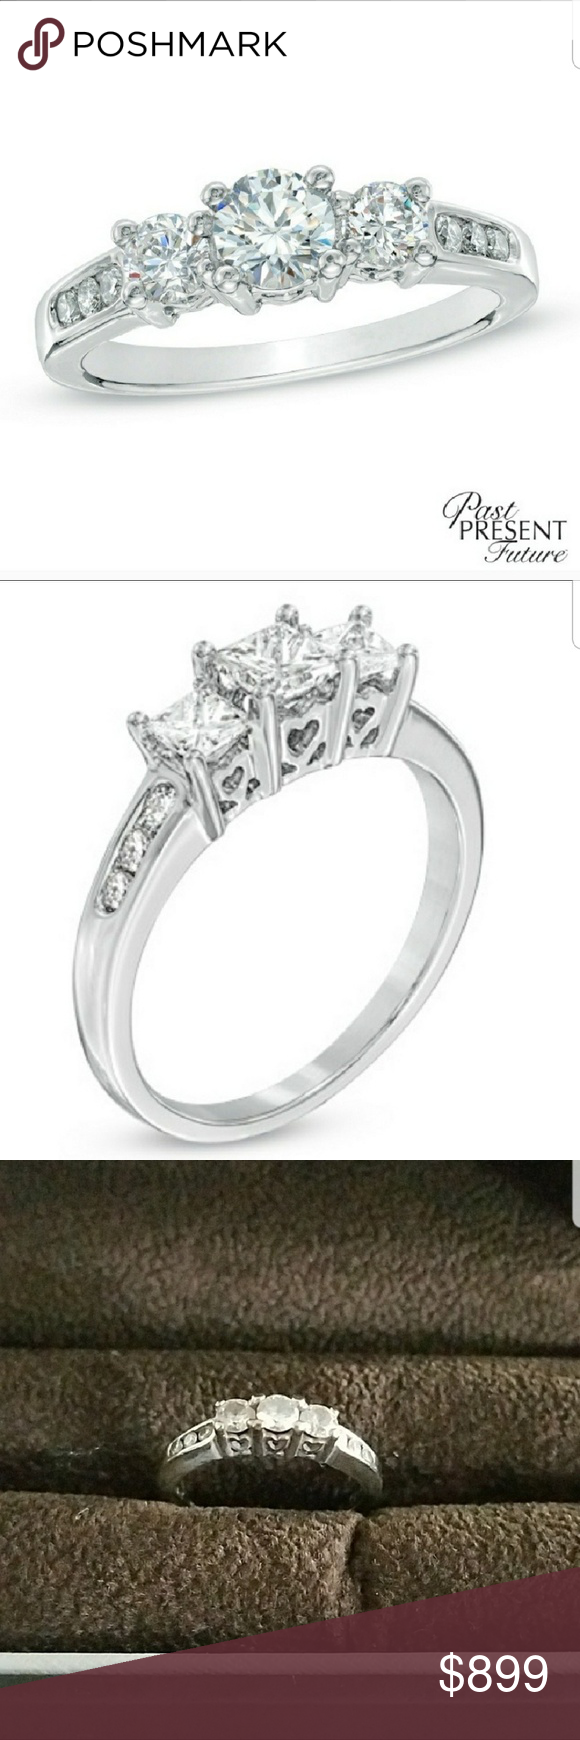 Past Present Future 1 2 Carat Diamond Ring With Images